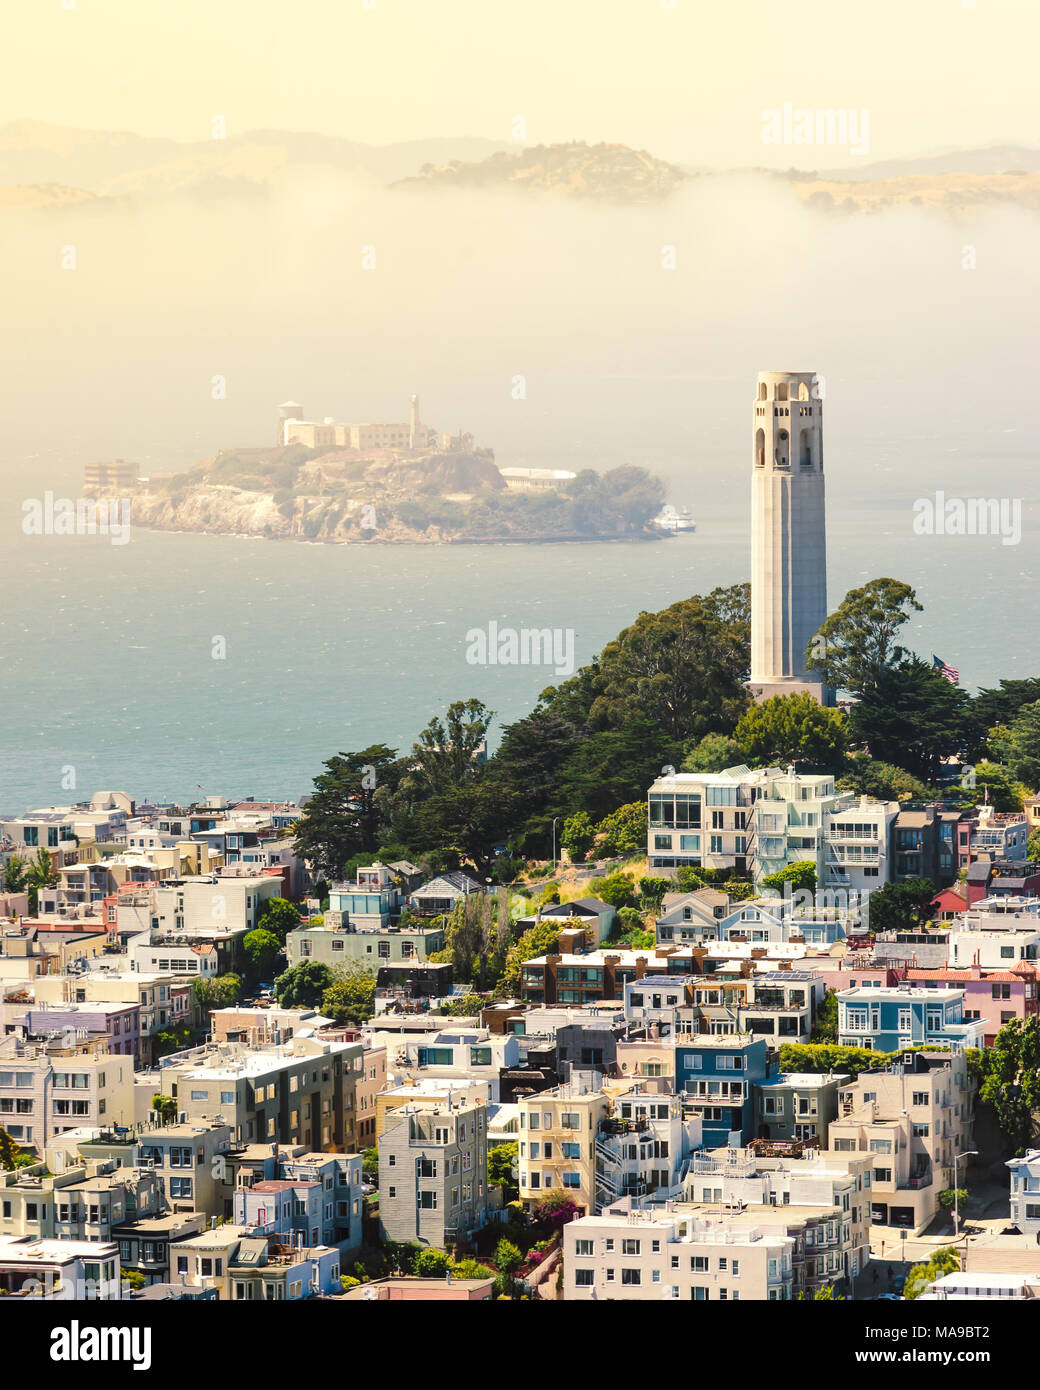 Golden hour sunset with Coit Tower, Alcatraz and classic San Francisco houses in North Beach. - Stock Image